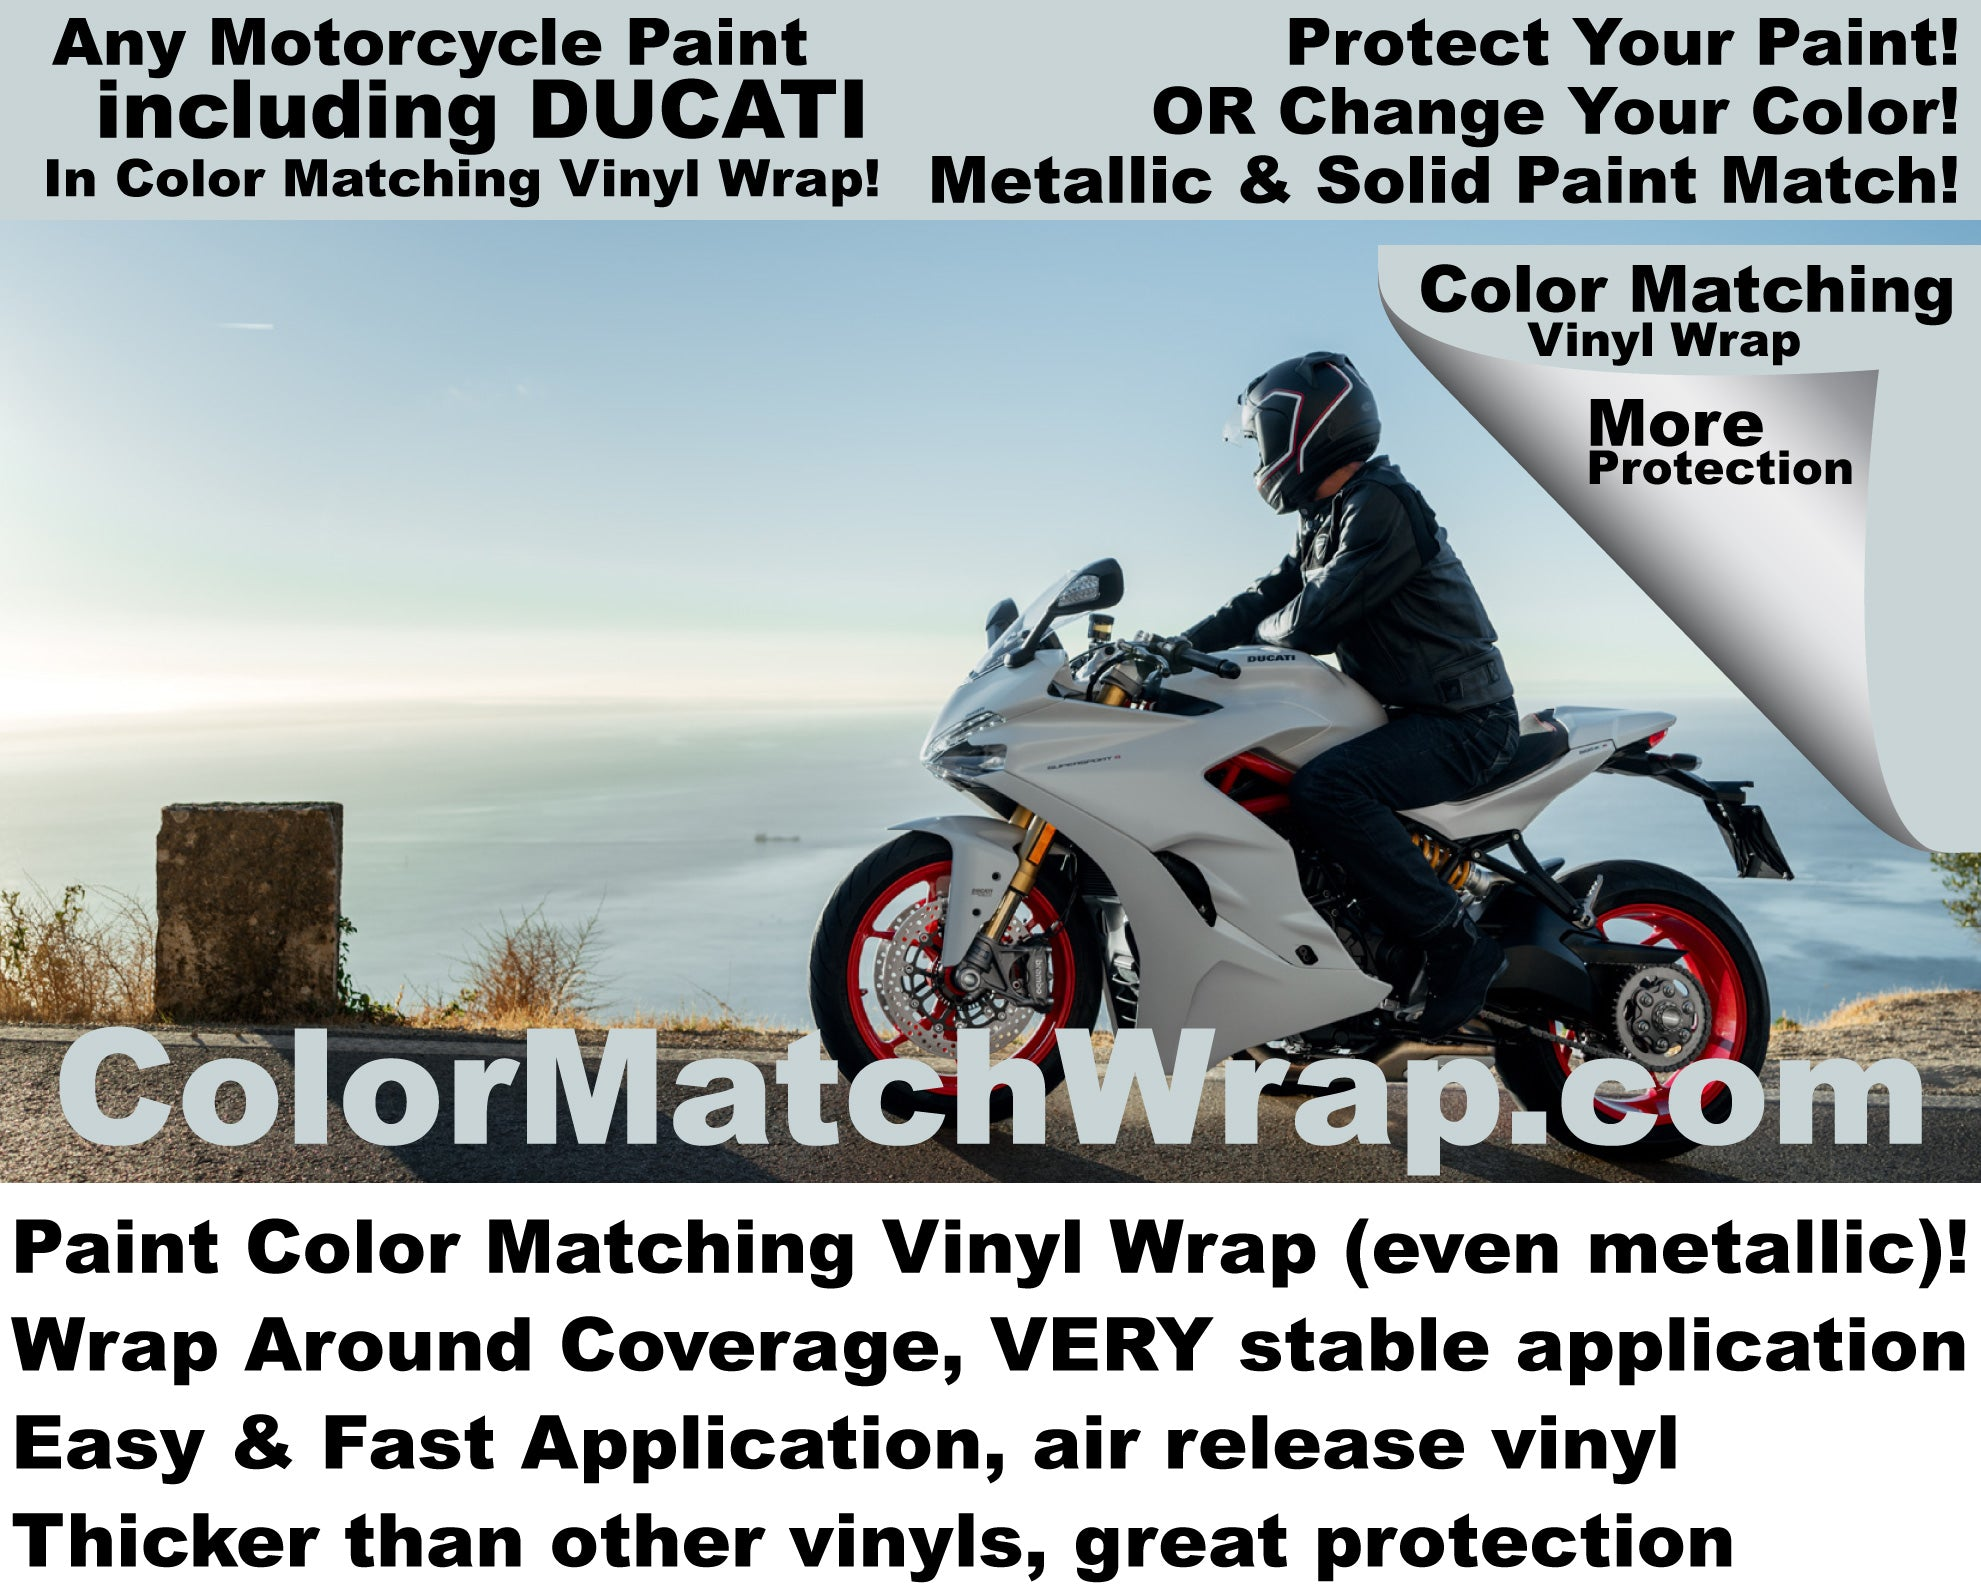 match any motorcycle paint in vinyl wrap